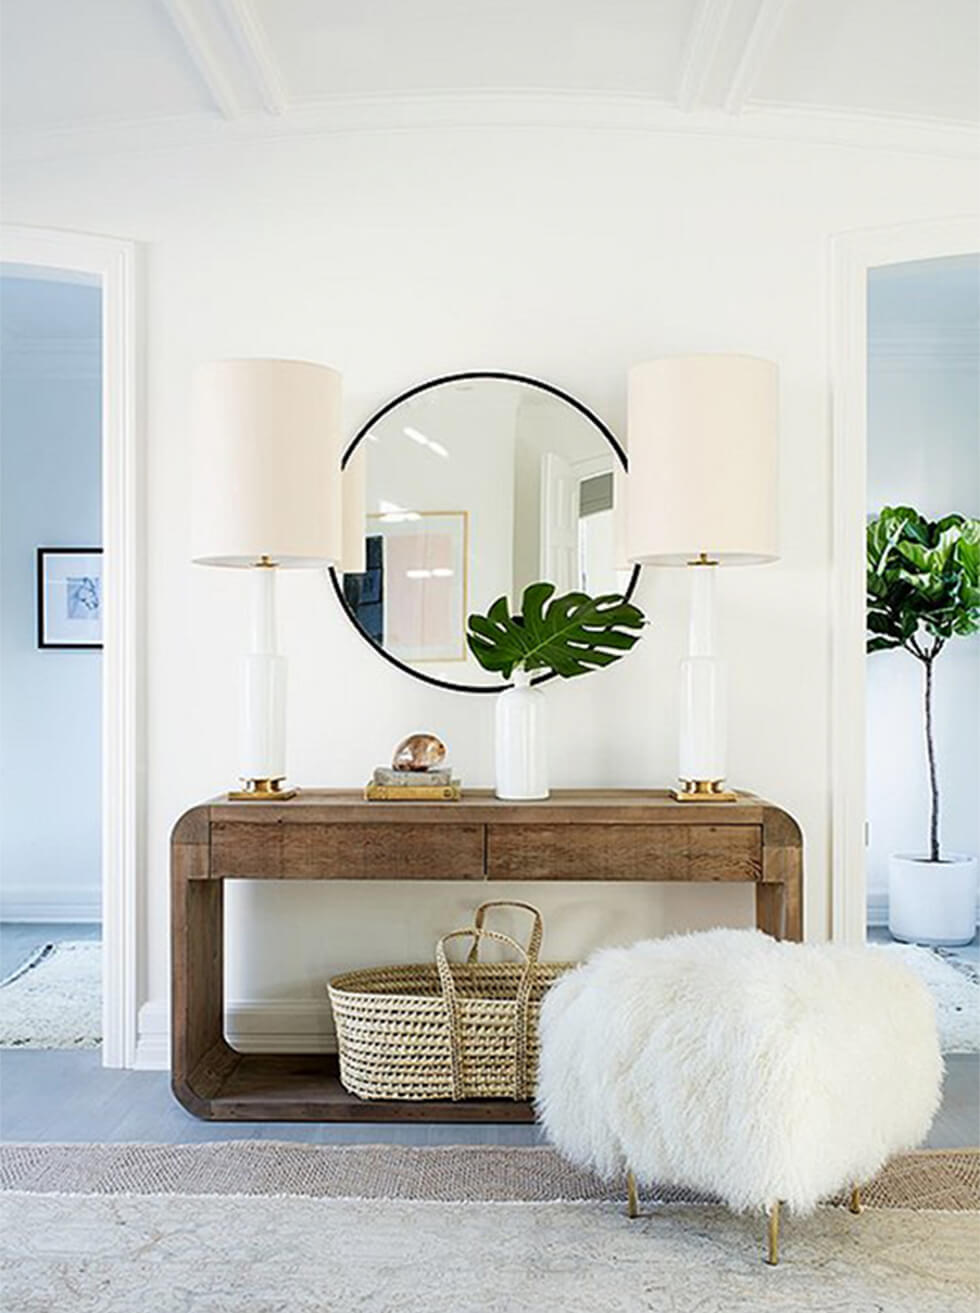 Round mirror with wooden sideboard